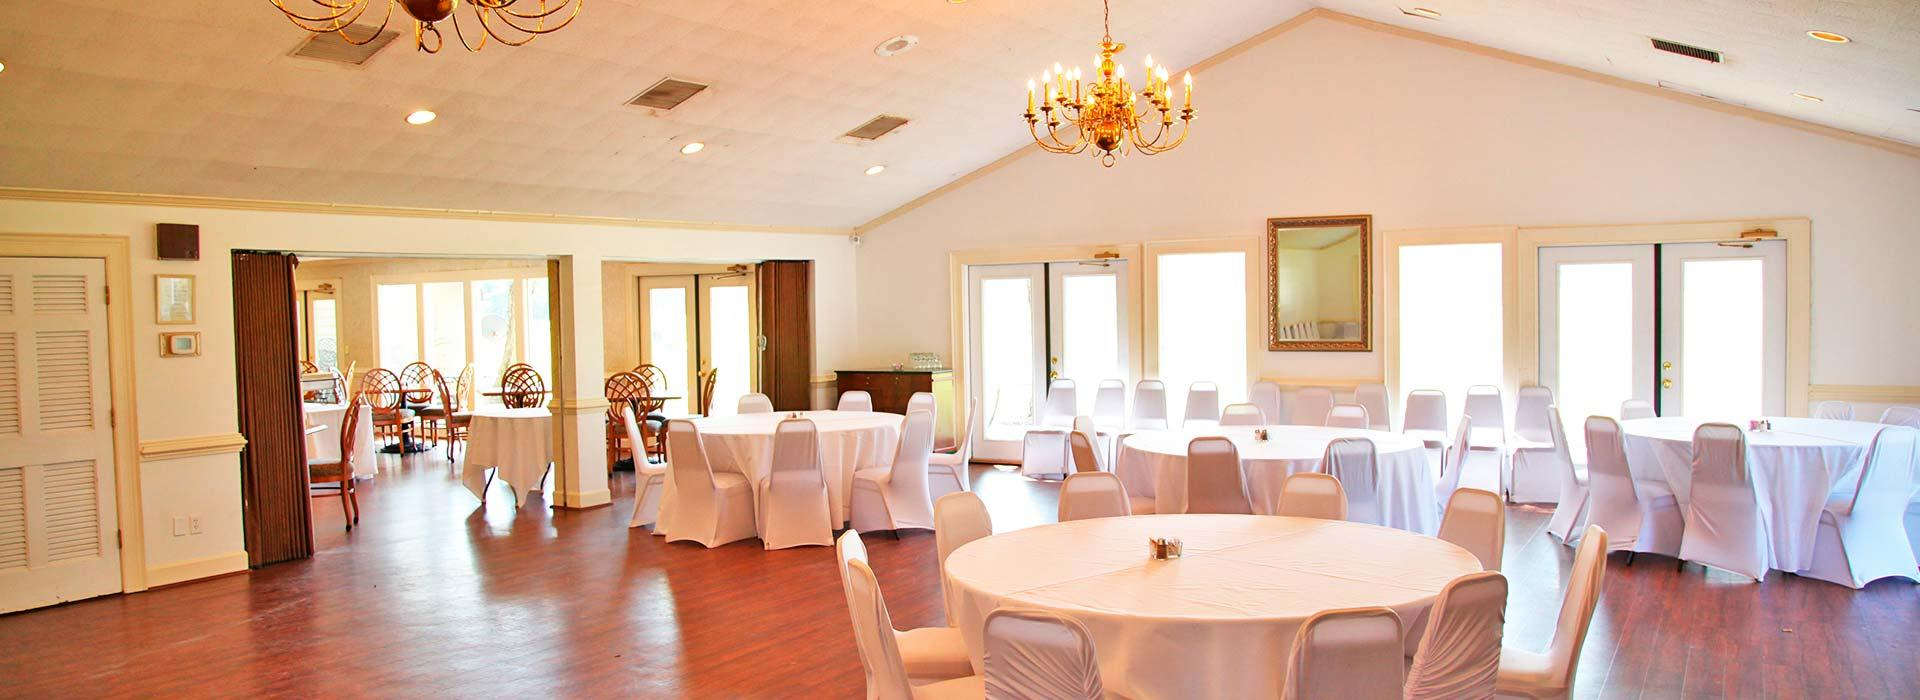 Banquet hall at YMCA of the Pines golf course in Elizabeth City, NC